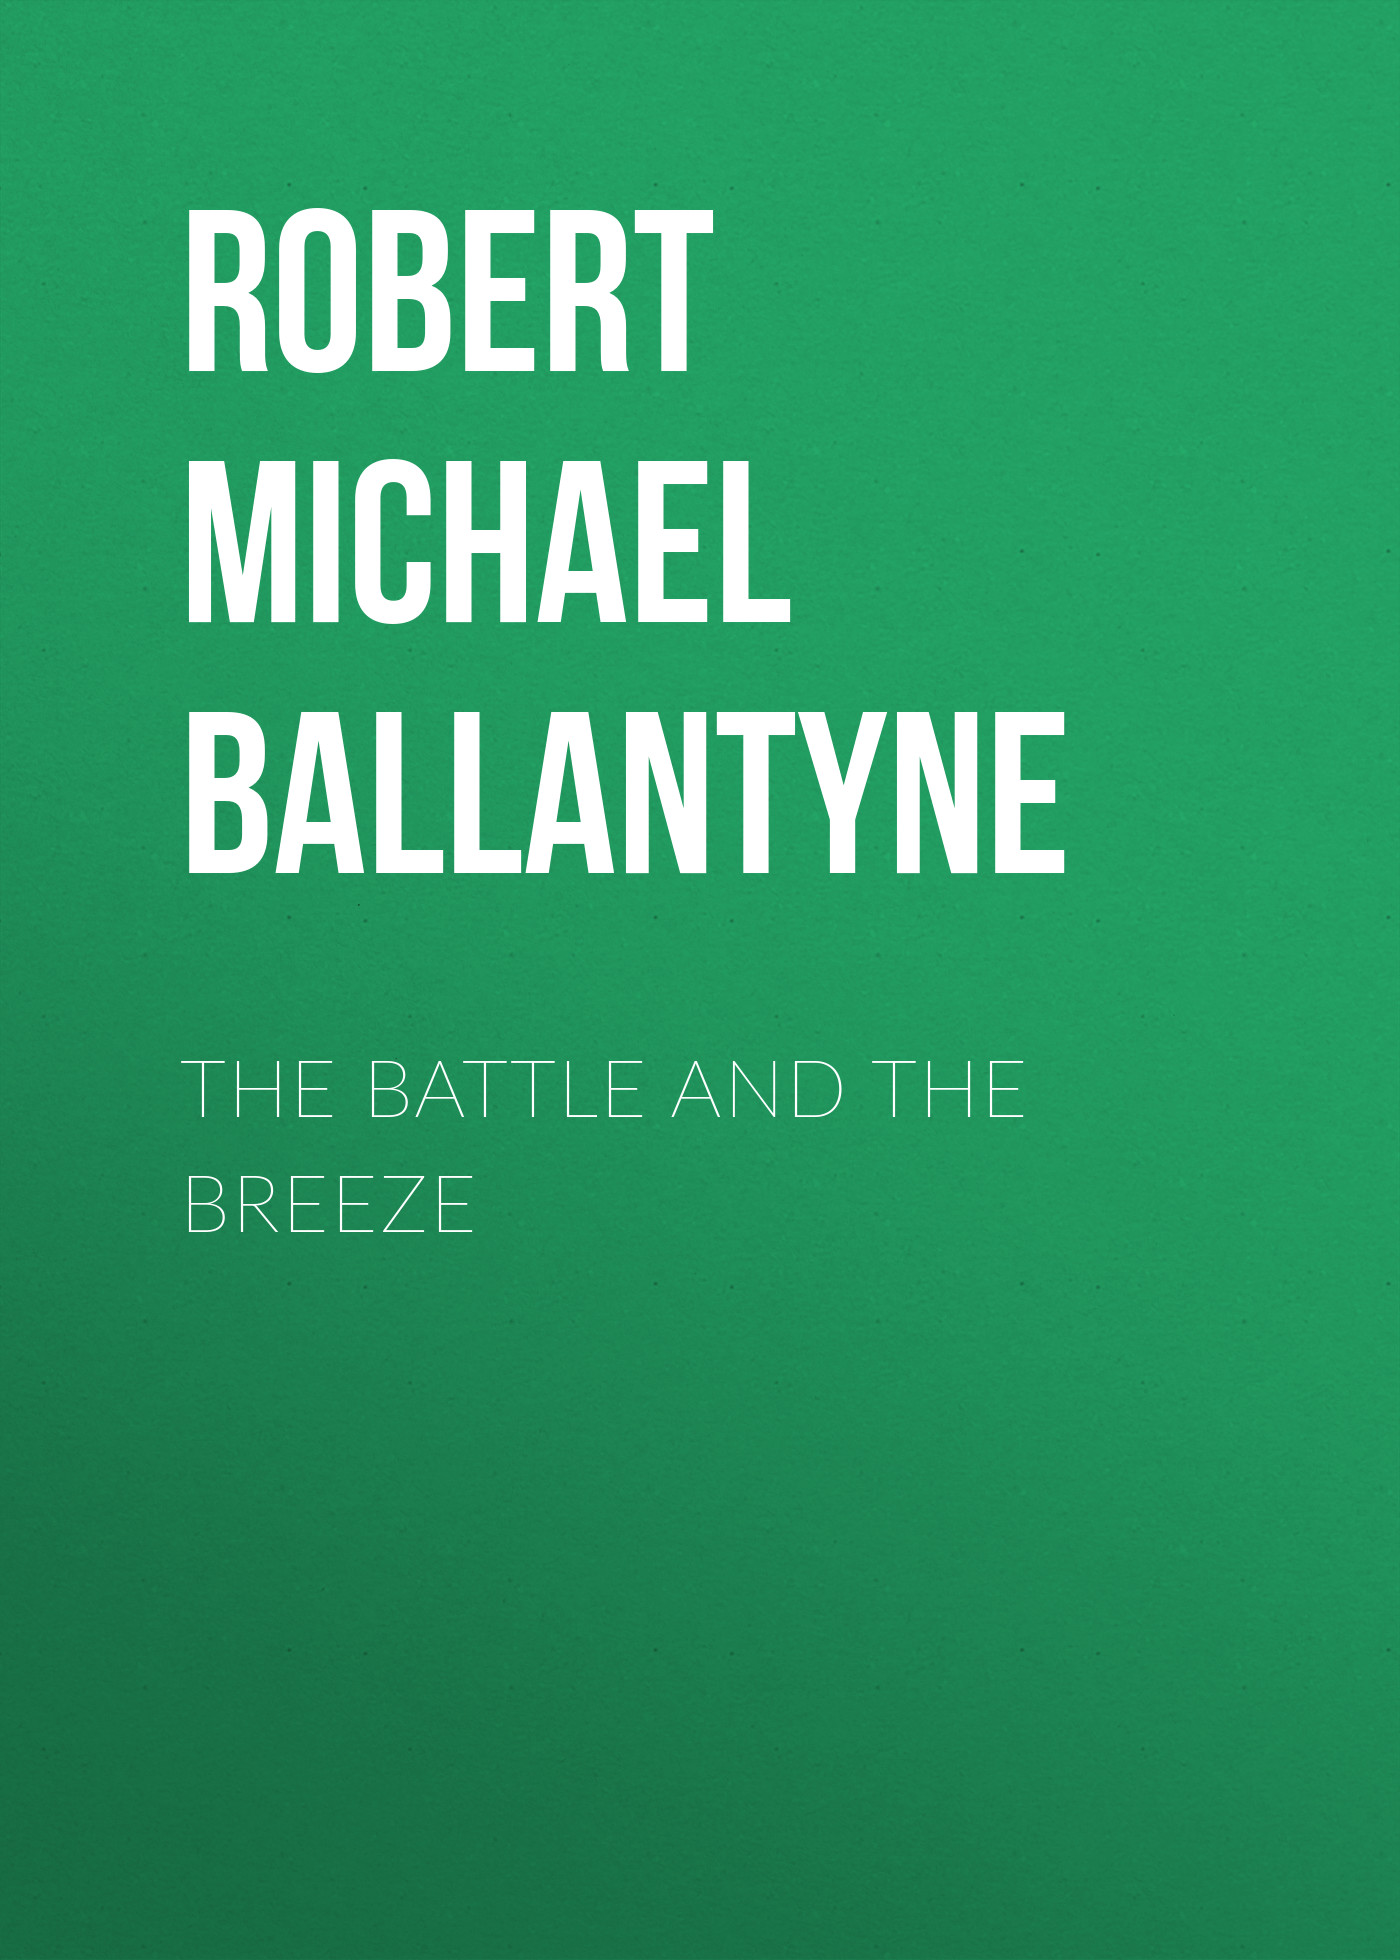 лучшая цена Robert Michael Ballantyne The Battle and the Breeze